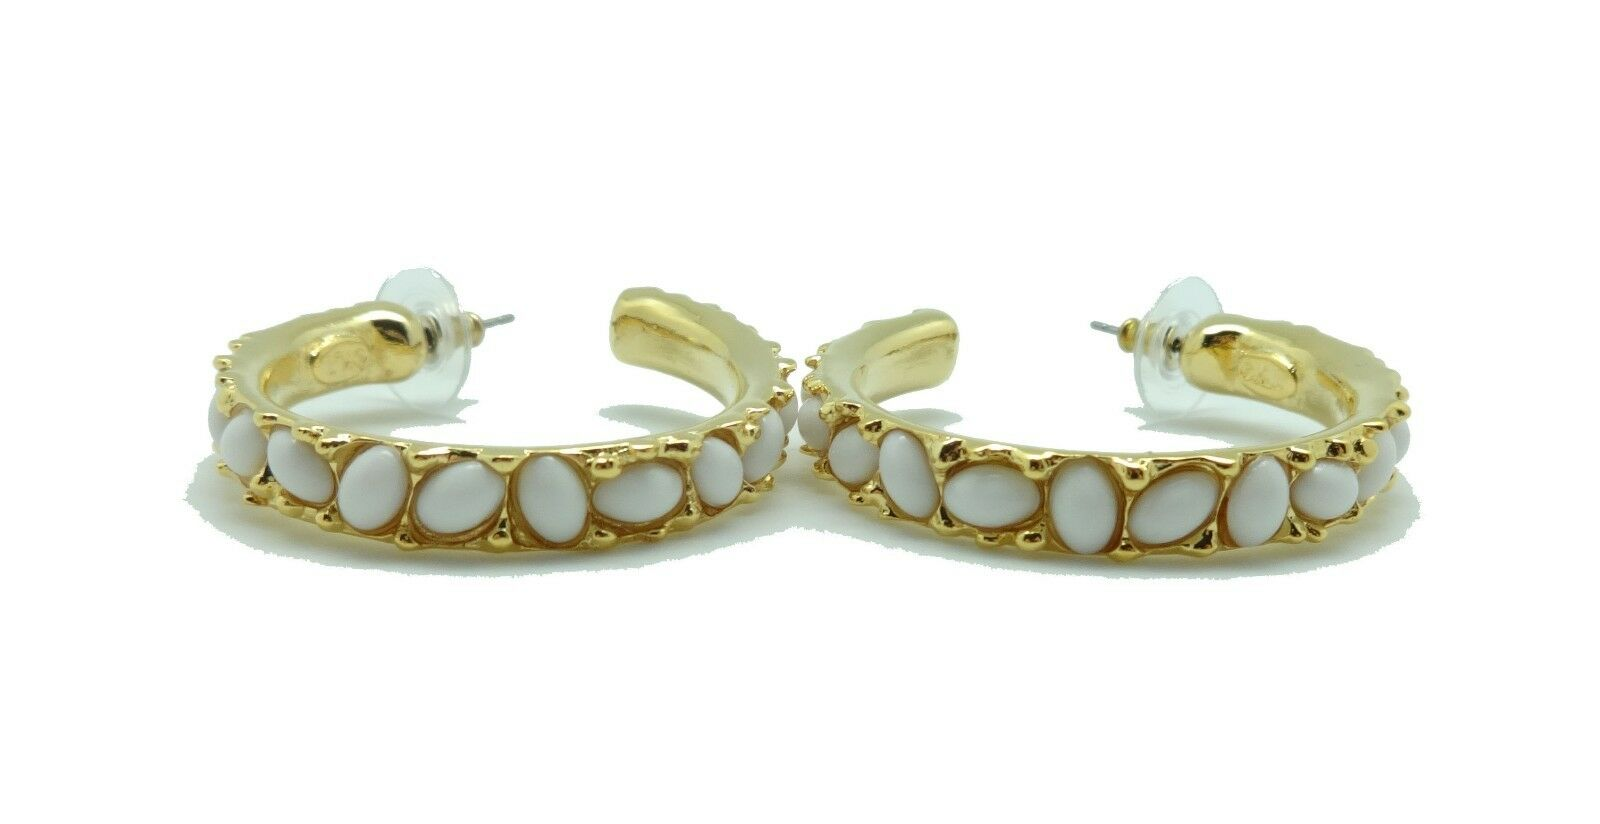 KENNETH JAY LANE Medium White Cabochon goldtone Hoop Pierced Earrings 1 5 8